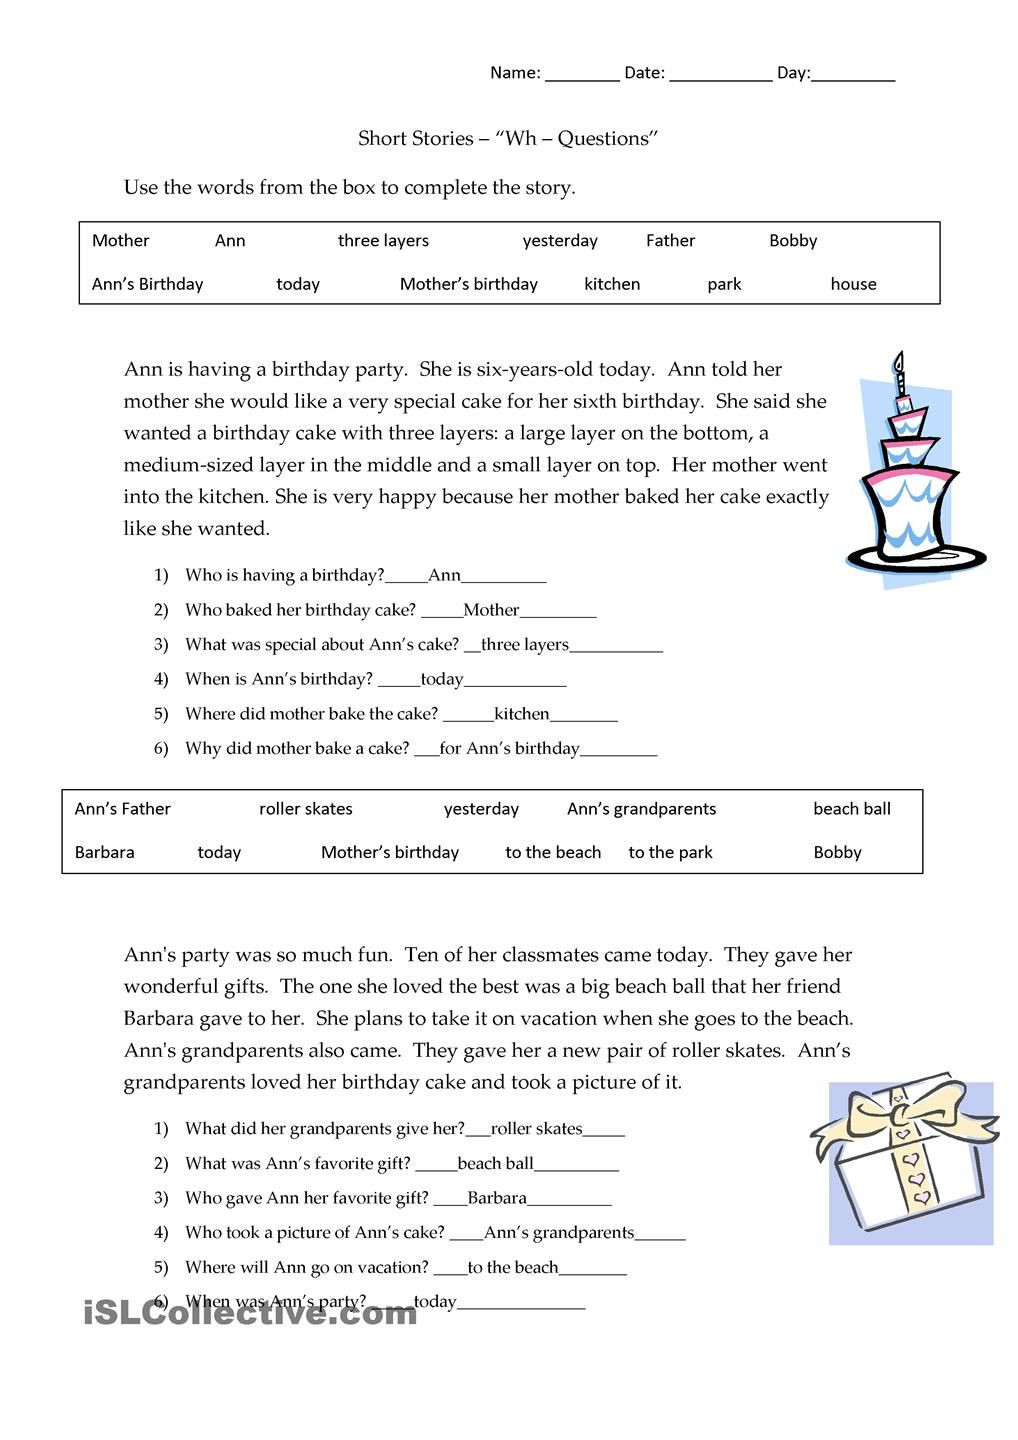 Wh Questions Reading Comprehension Worksheets Short Stories Wh Questions Answers